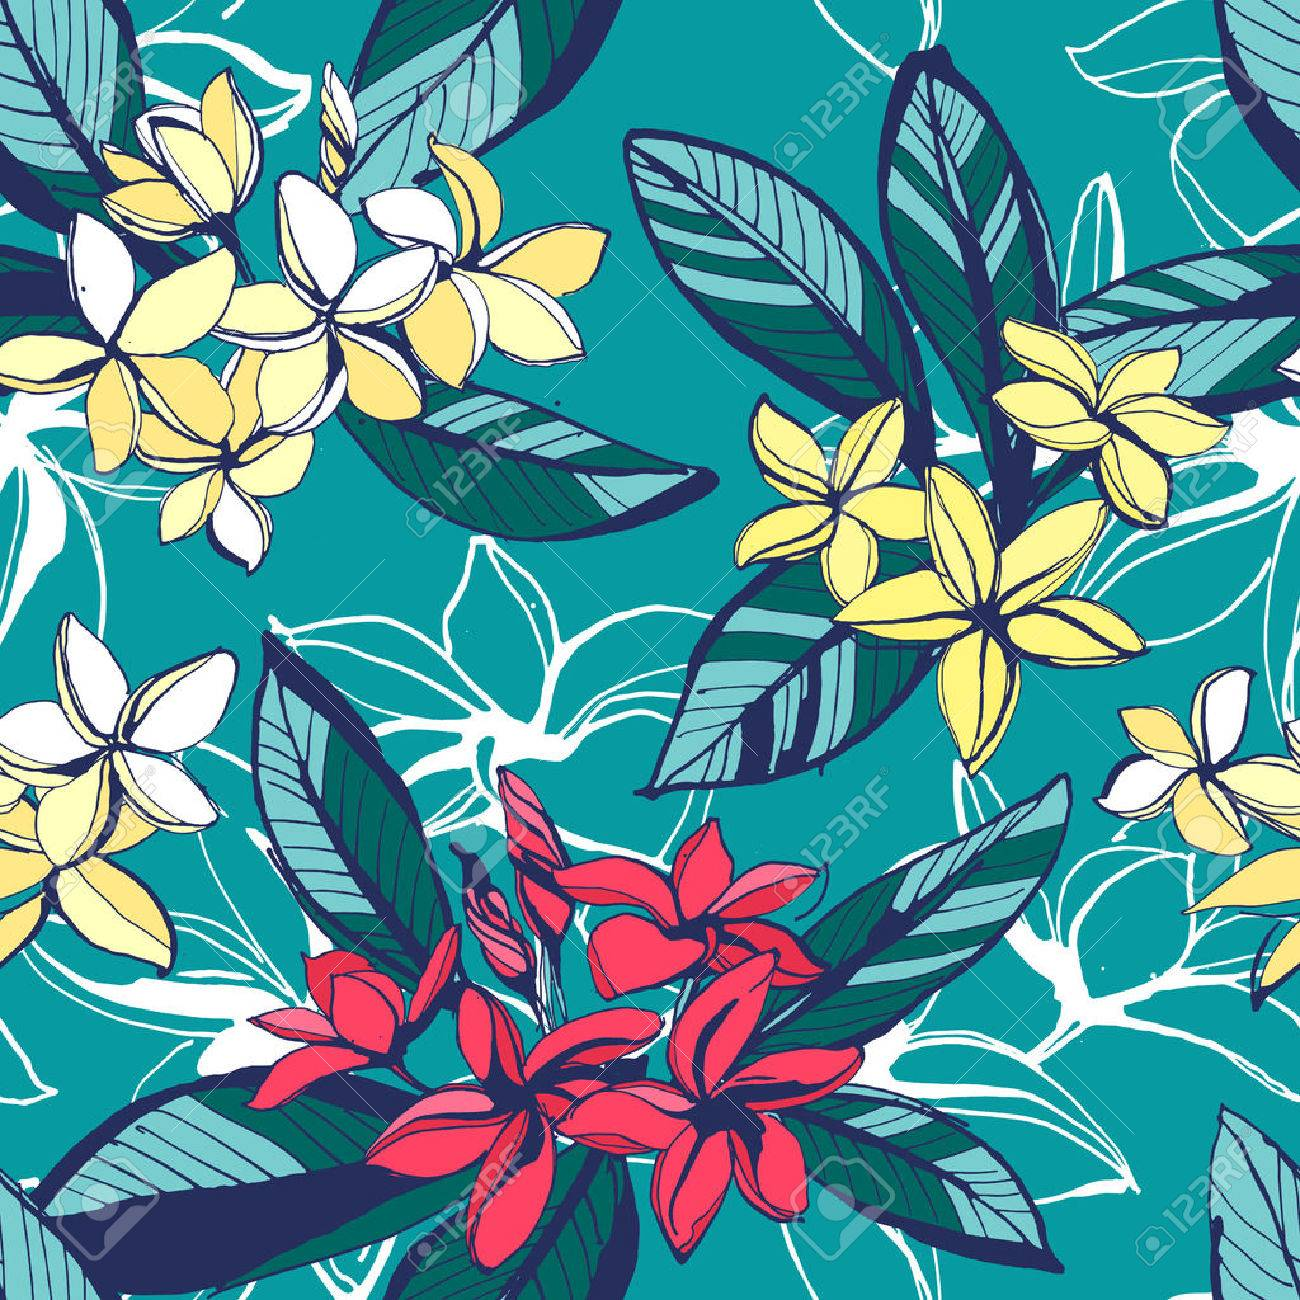 Vector Illustration Tropical Floral Summer Seamless Pattern With